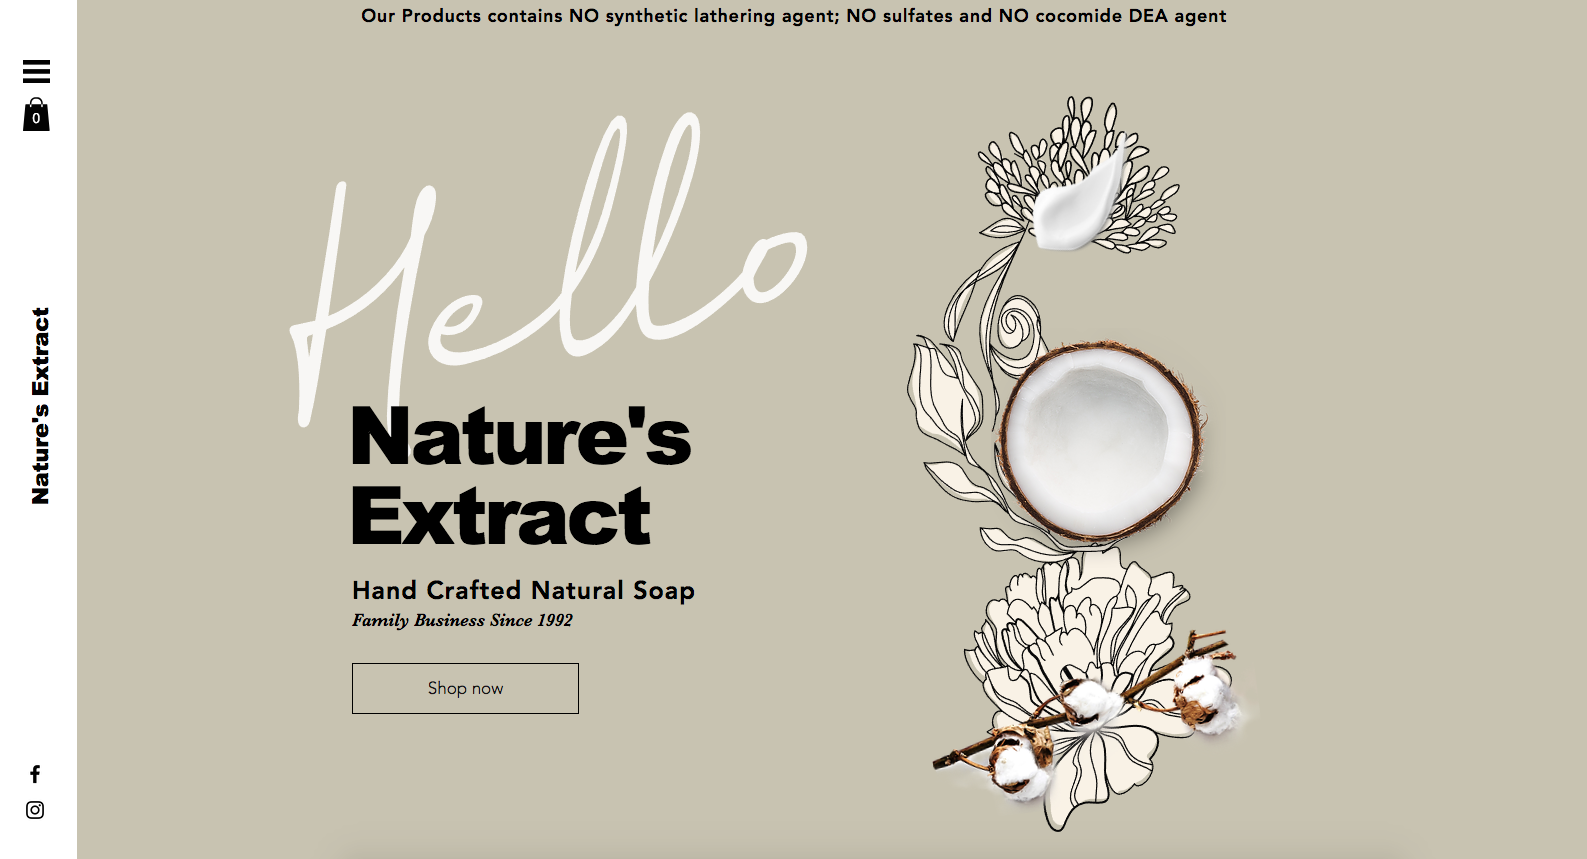 Natures Extract